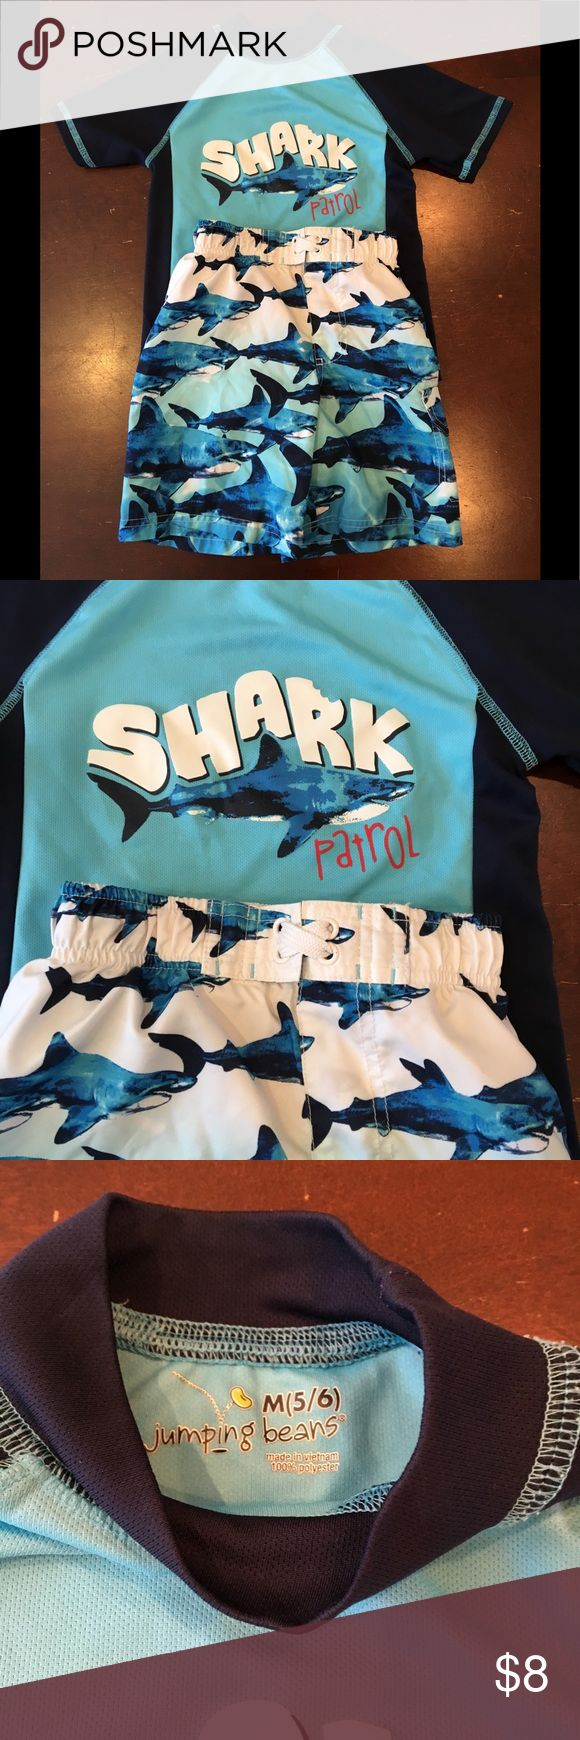 Shark patrol!  Swim set Jumping beans swim trunks and rash guard shirt.  Trucks are size 4 and top is size 5/6.  (My son is long in the torso...). In great shape and ready for more swimming fun! Jumping Beans Swim